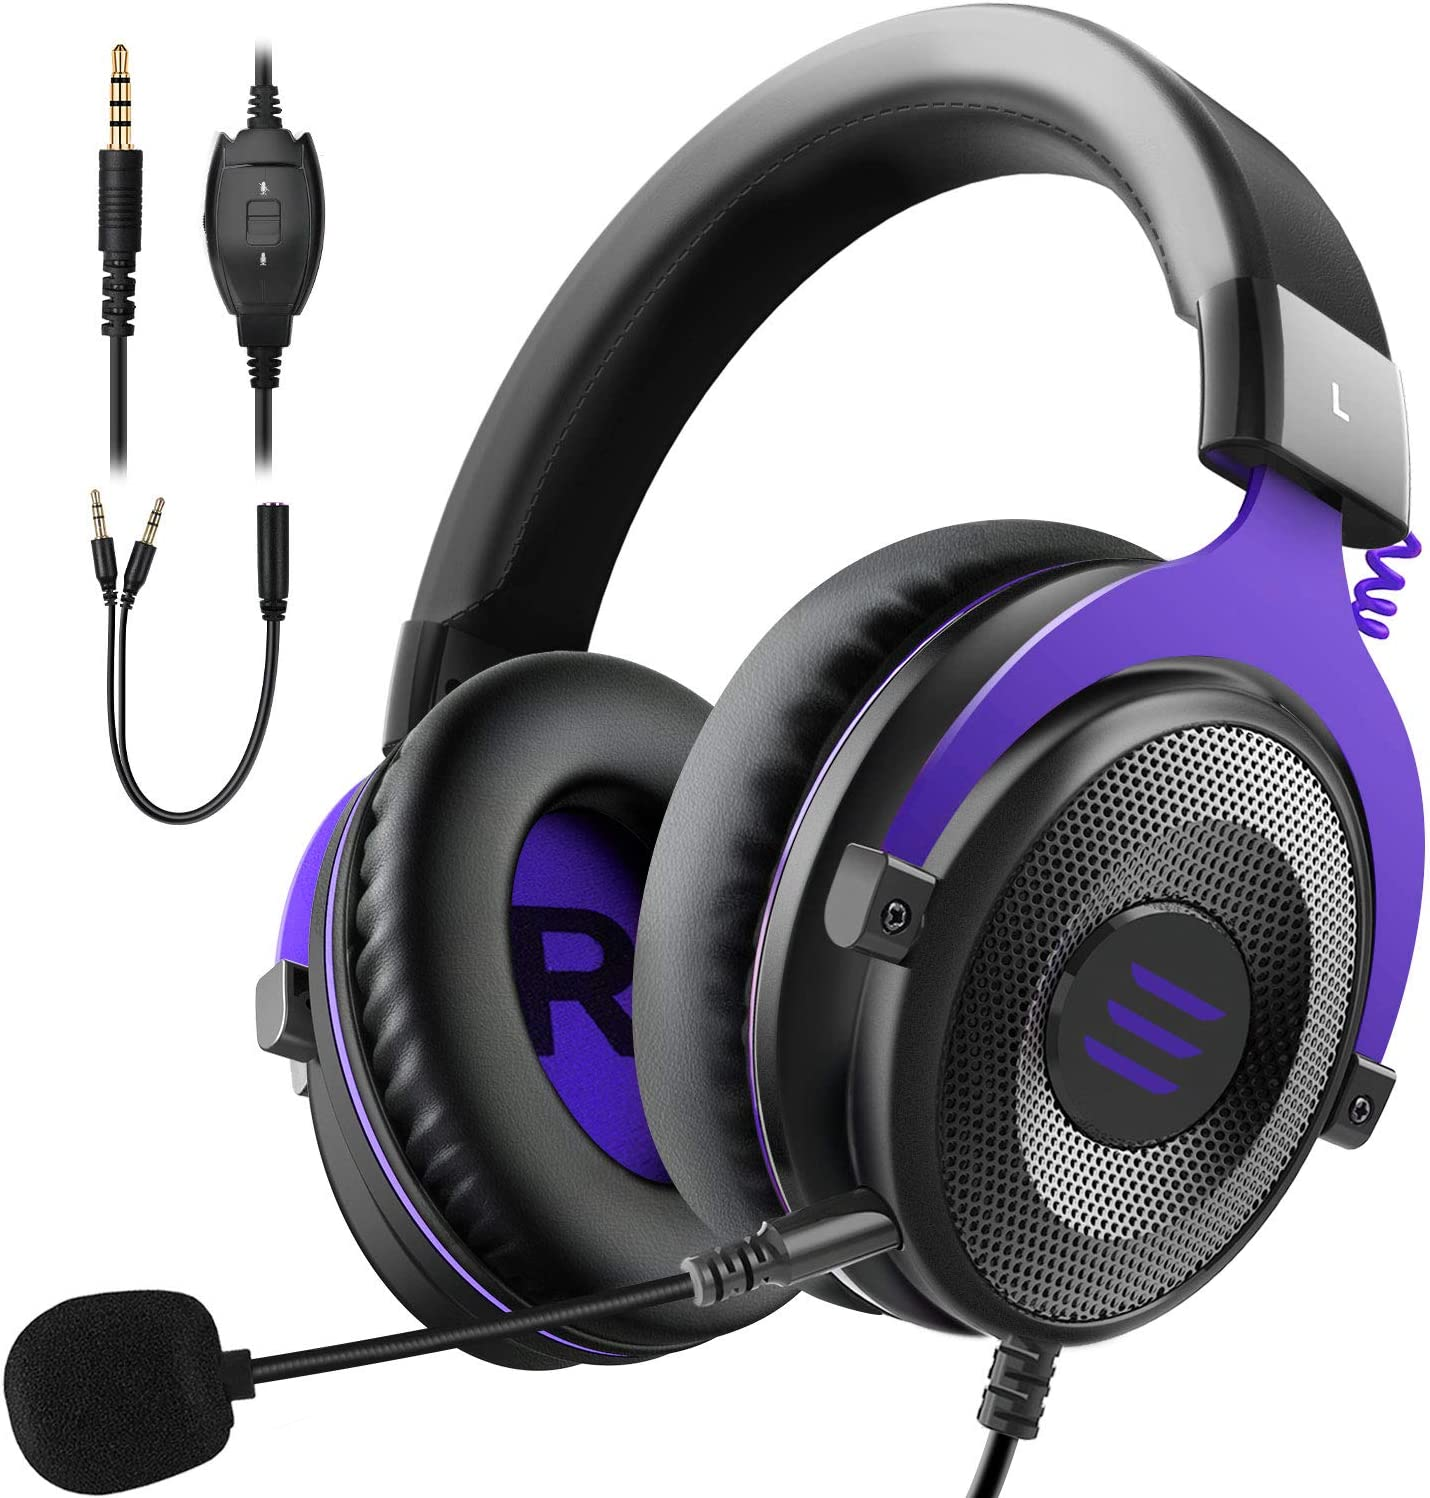 EKSA E900 Xbox Gaming Headset-Stereo Headset Wired Gaming Headphones with Noise Canceling Mic, Over Ear Headphones Compatible with PS4, Xbox One, Nintendo Switch, PC, Mac, Laptop(Purple)